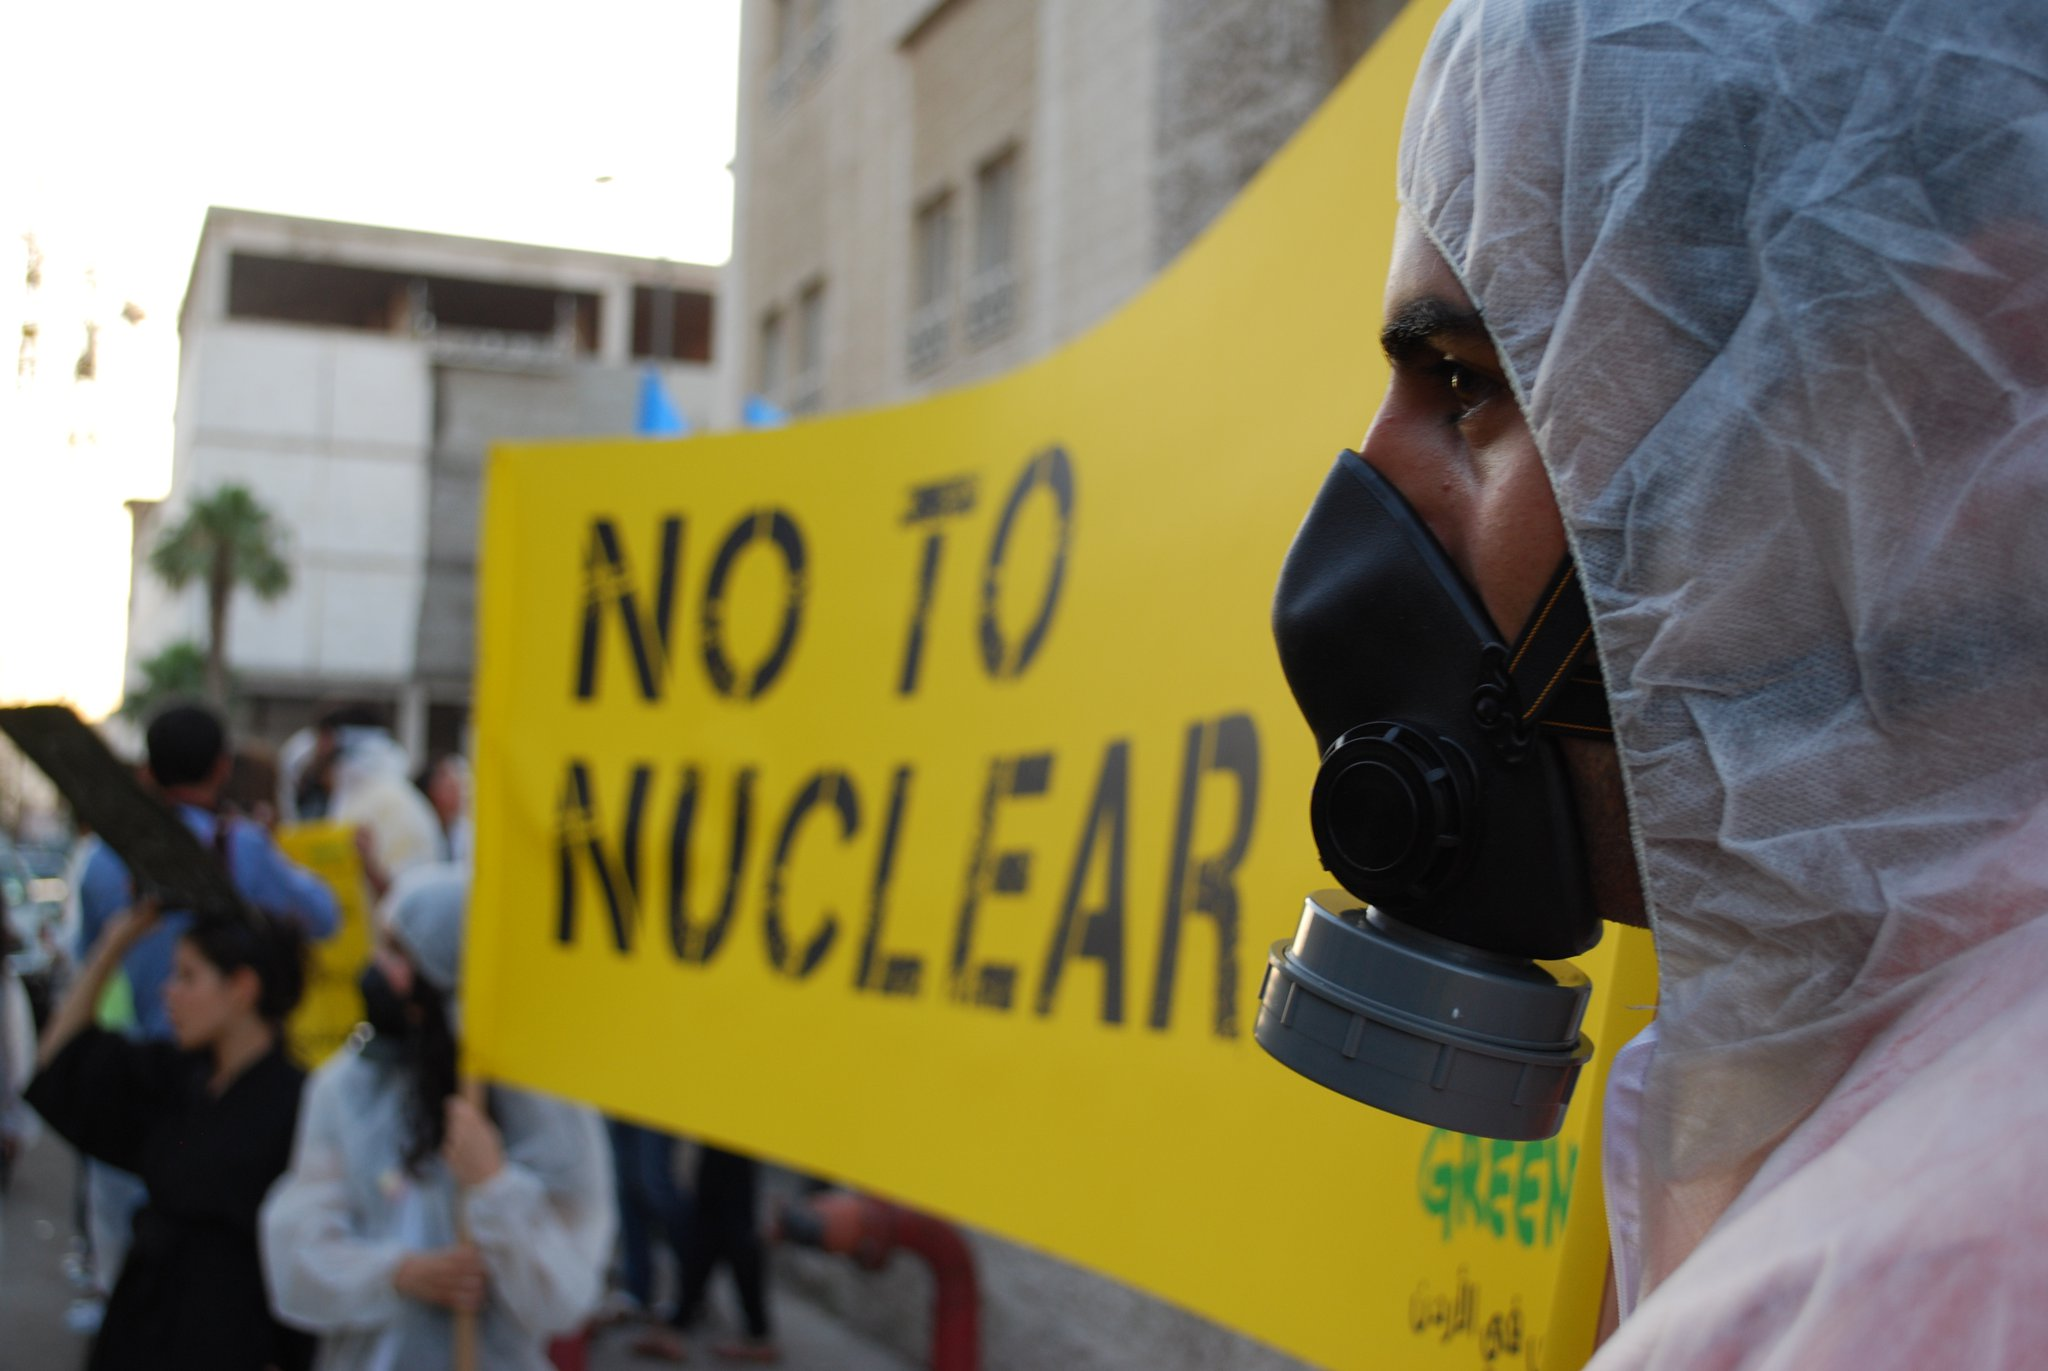 nuclear energy jordan protests greenpeace